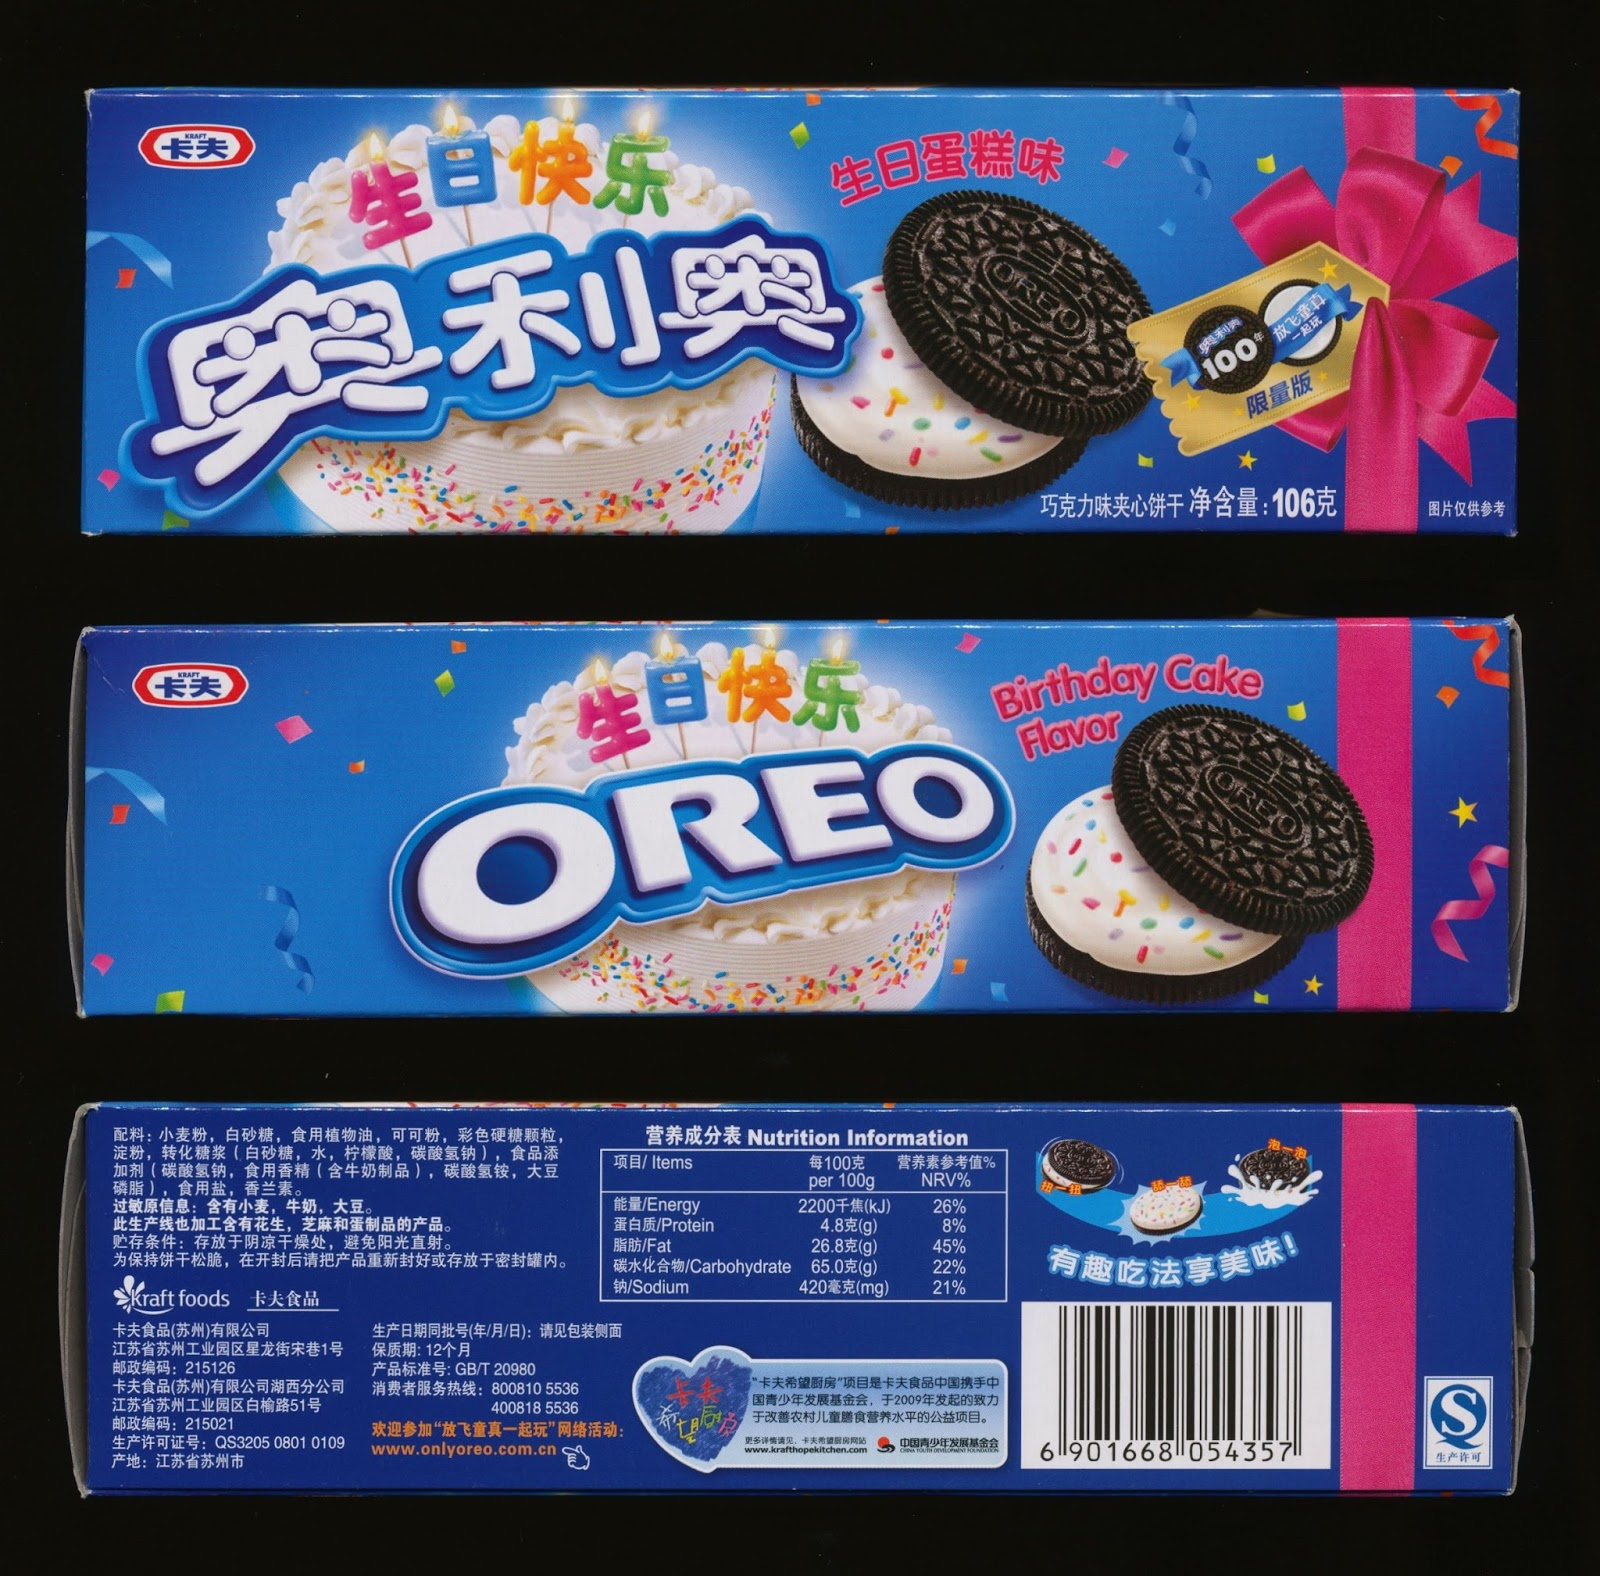 Tenth Letter of the Alphabet Typography Chinese Oreo Cookies Part 2